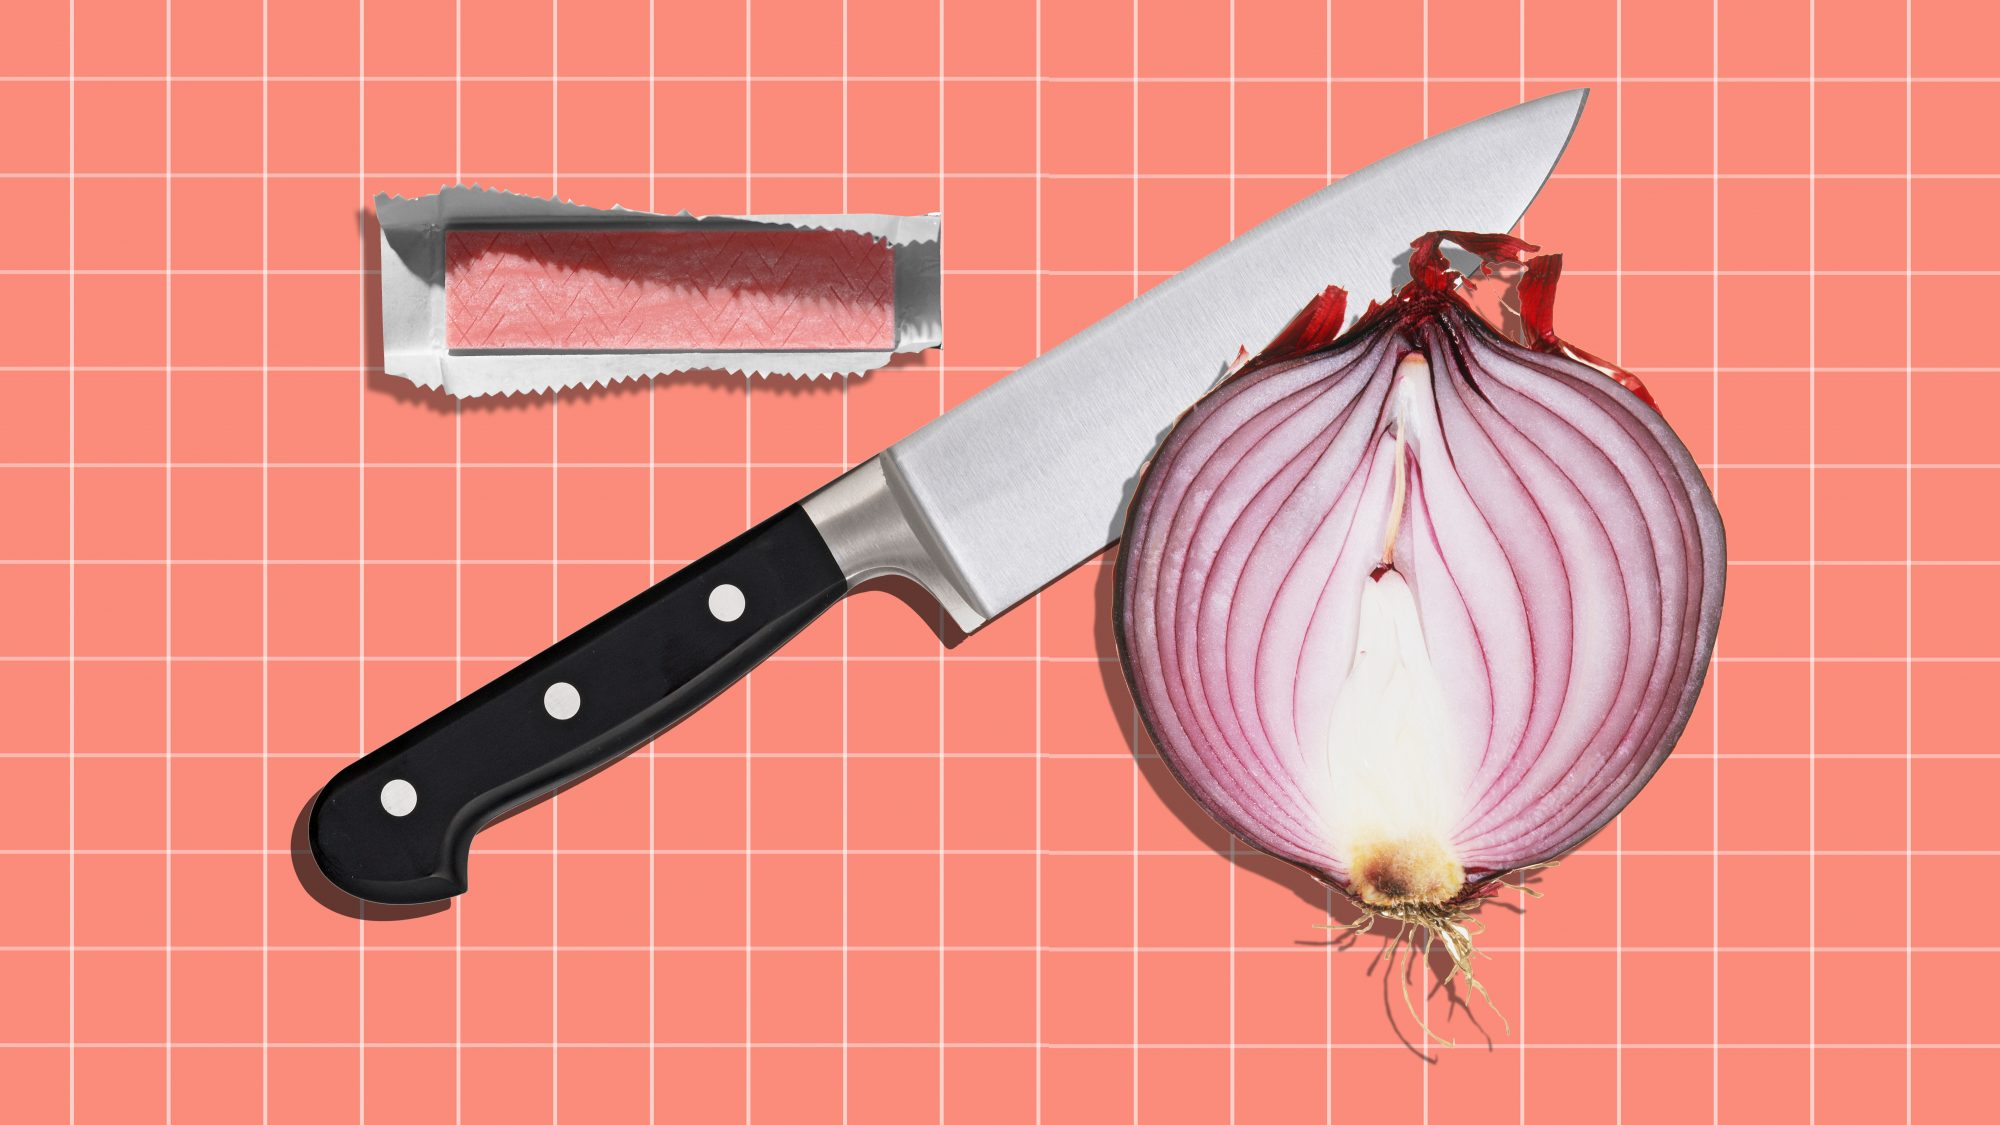 I Tried 6 Ways to Cut Onions Without Crying—This Is What Worked